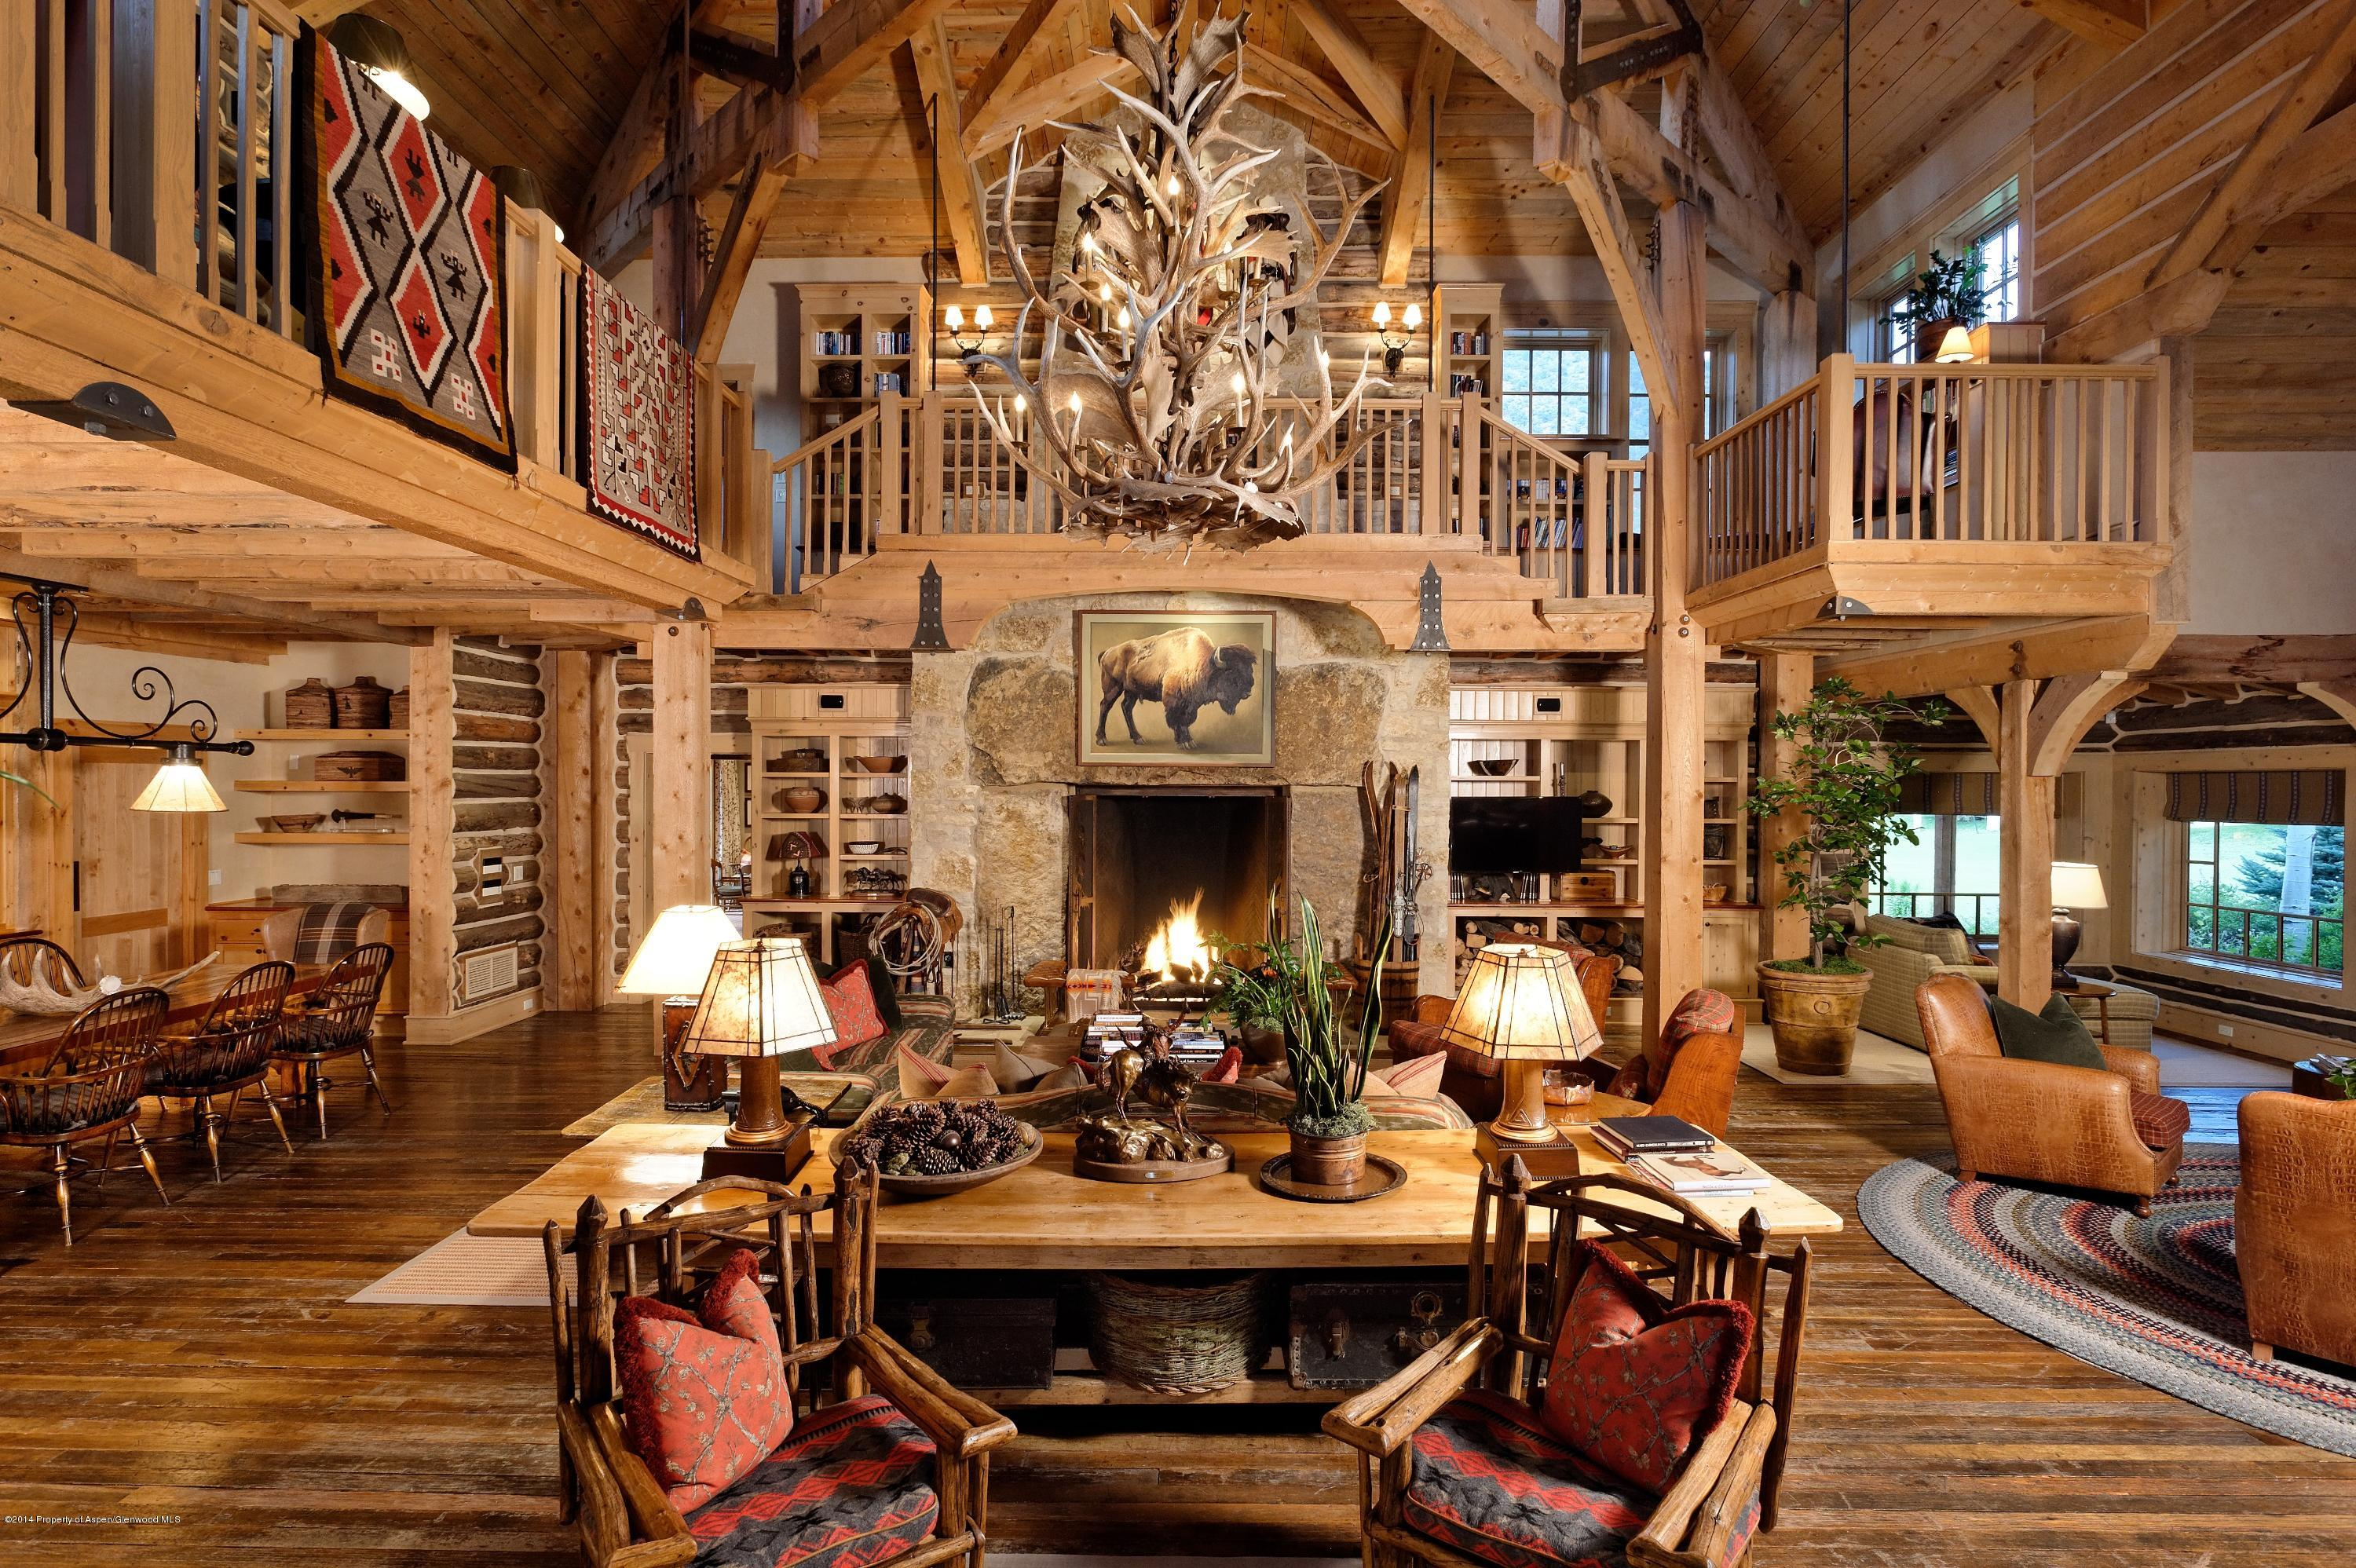 MLS# 135595 - 23 - 50 E River Ranch Road, Snowmass, CO 81654